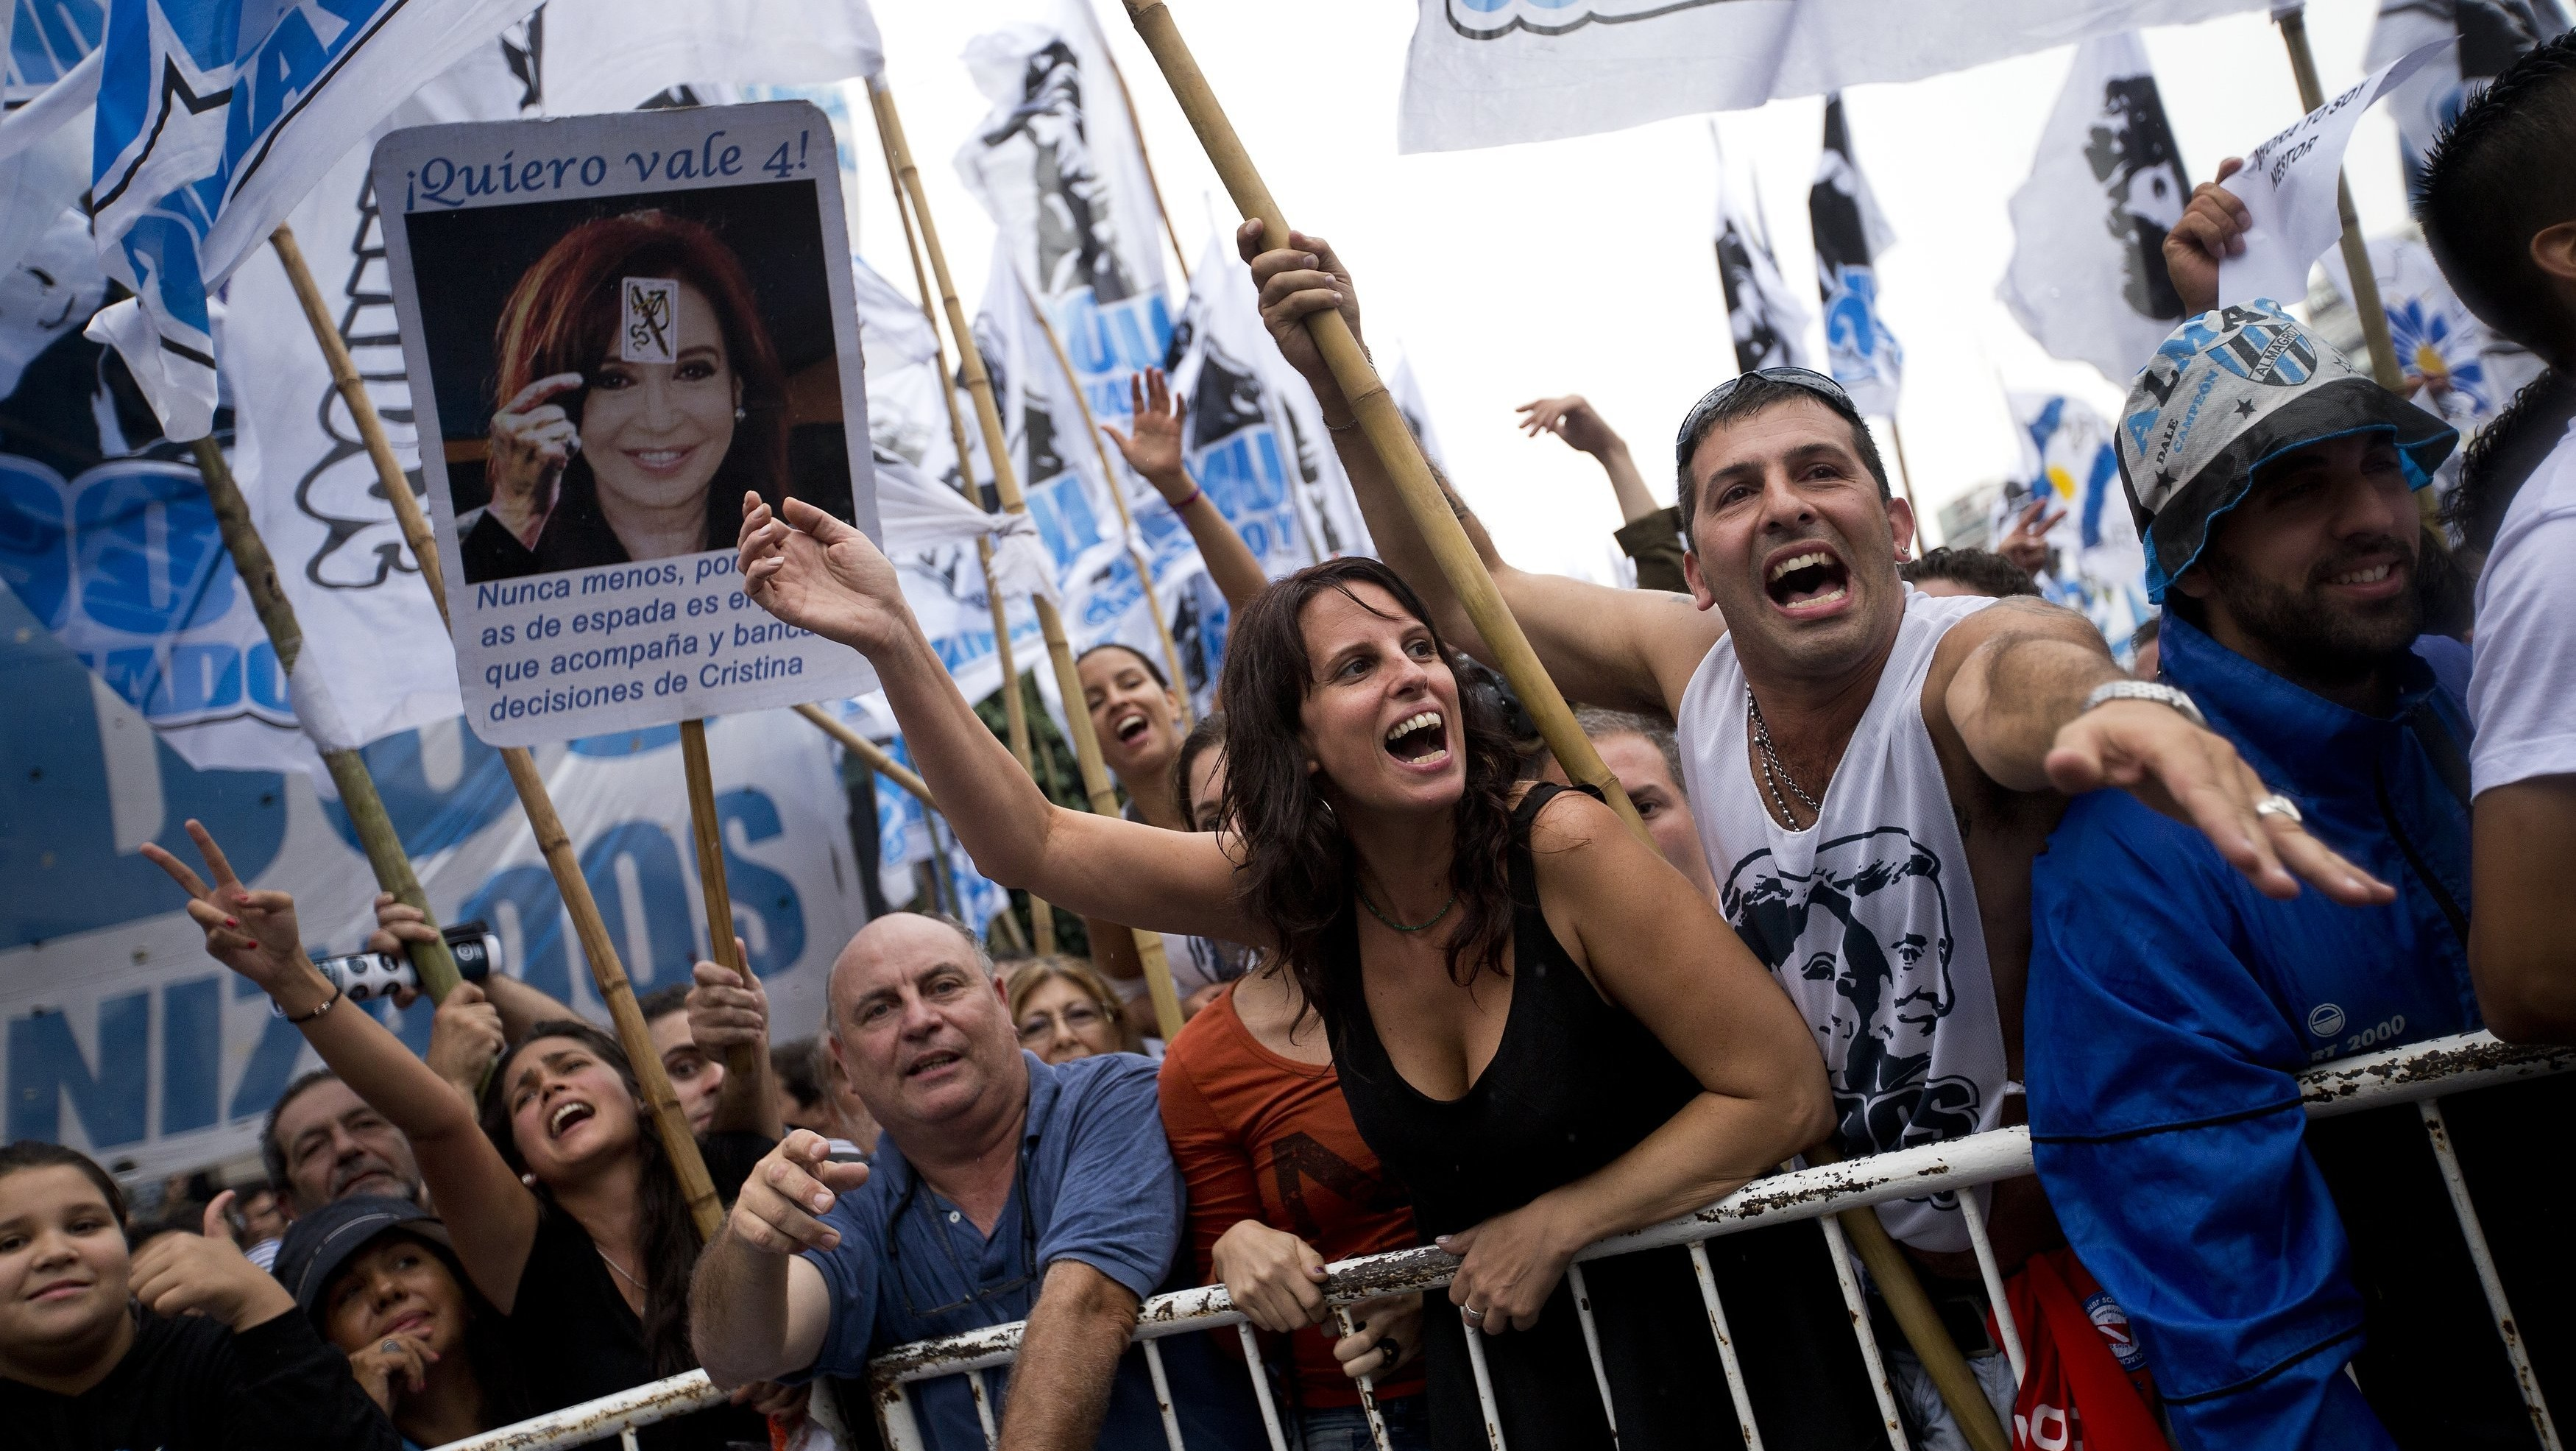 Kirchner Allies in Argentina's Congress Want to Censor Discriminatory Comments Online